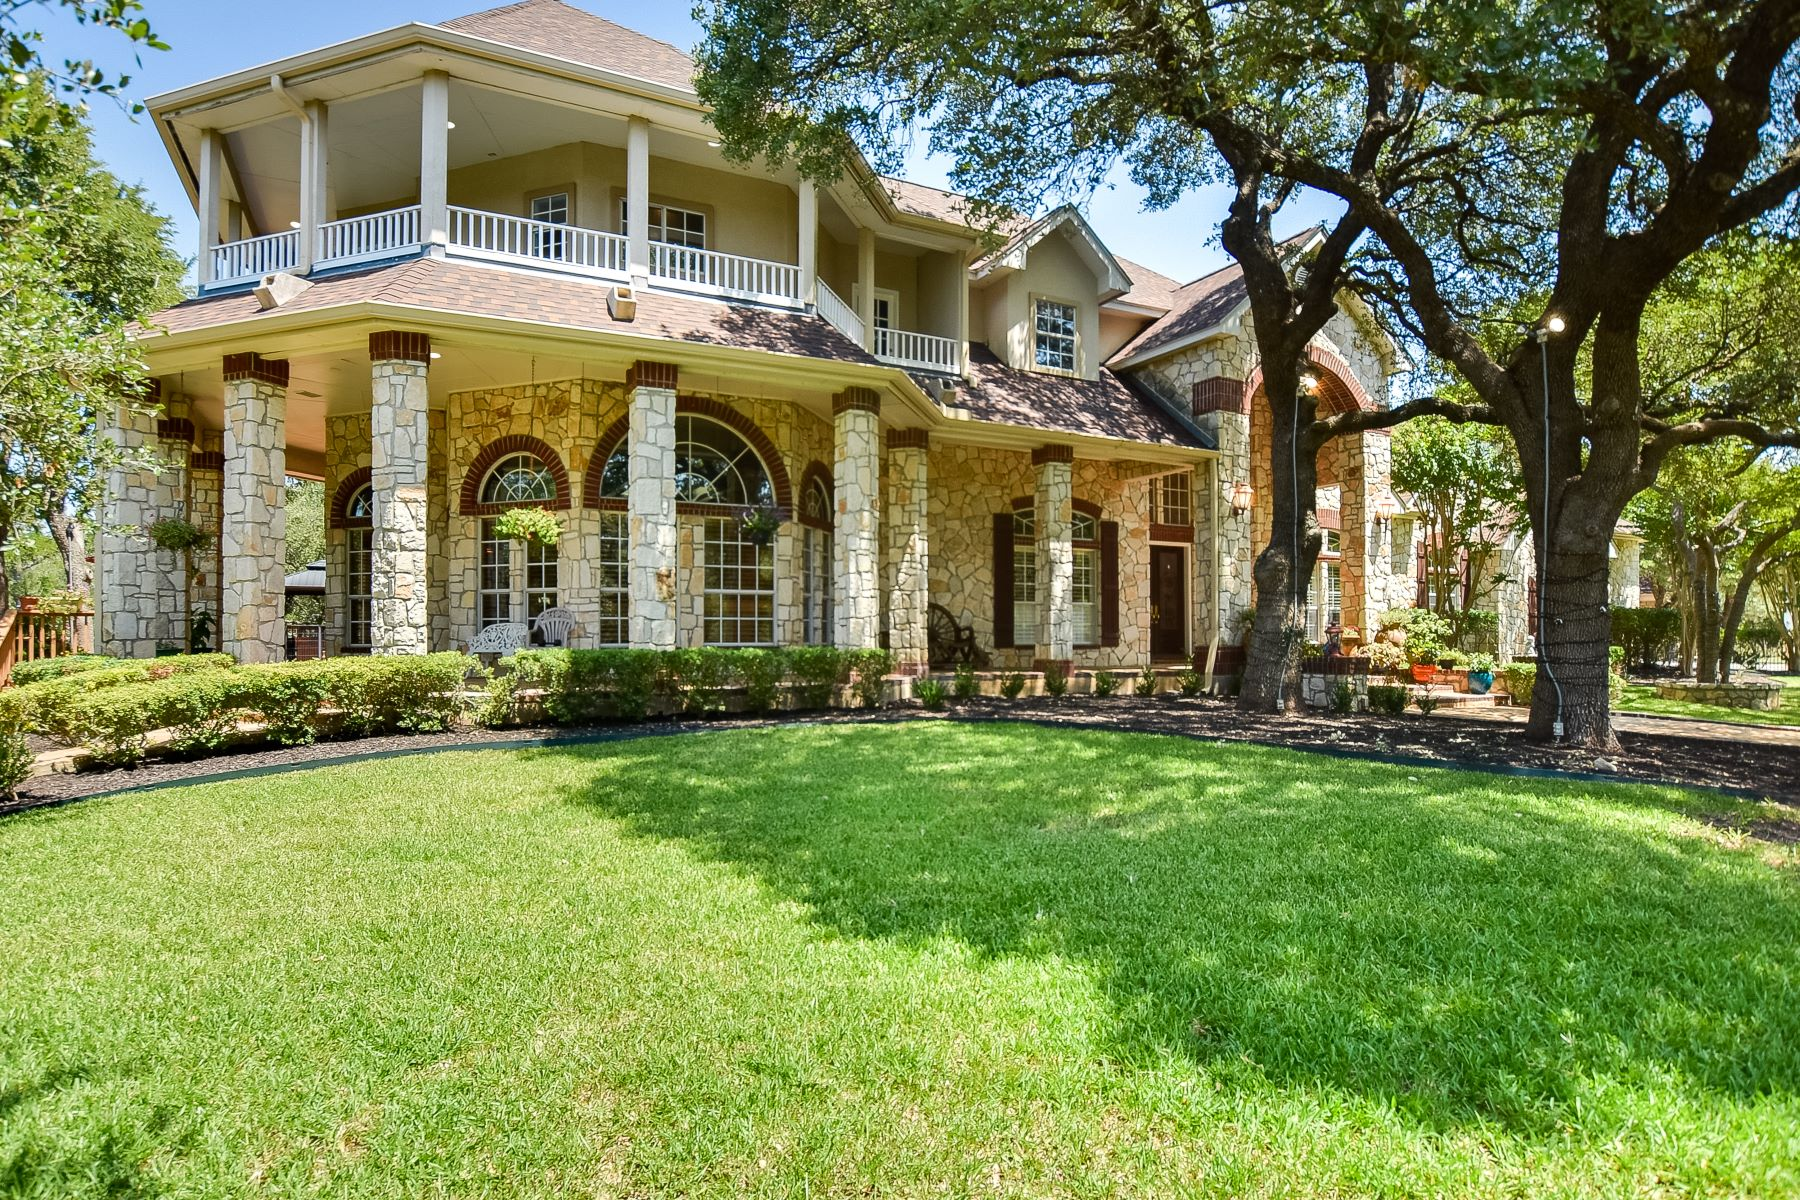 Single Family Homes for Sale at Exquisite Gated Estate in Fair Oaks Ranch 8040 Rolling Acres Trail Fair Oaks Ranch, Texas 78015 United States